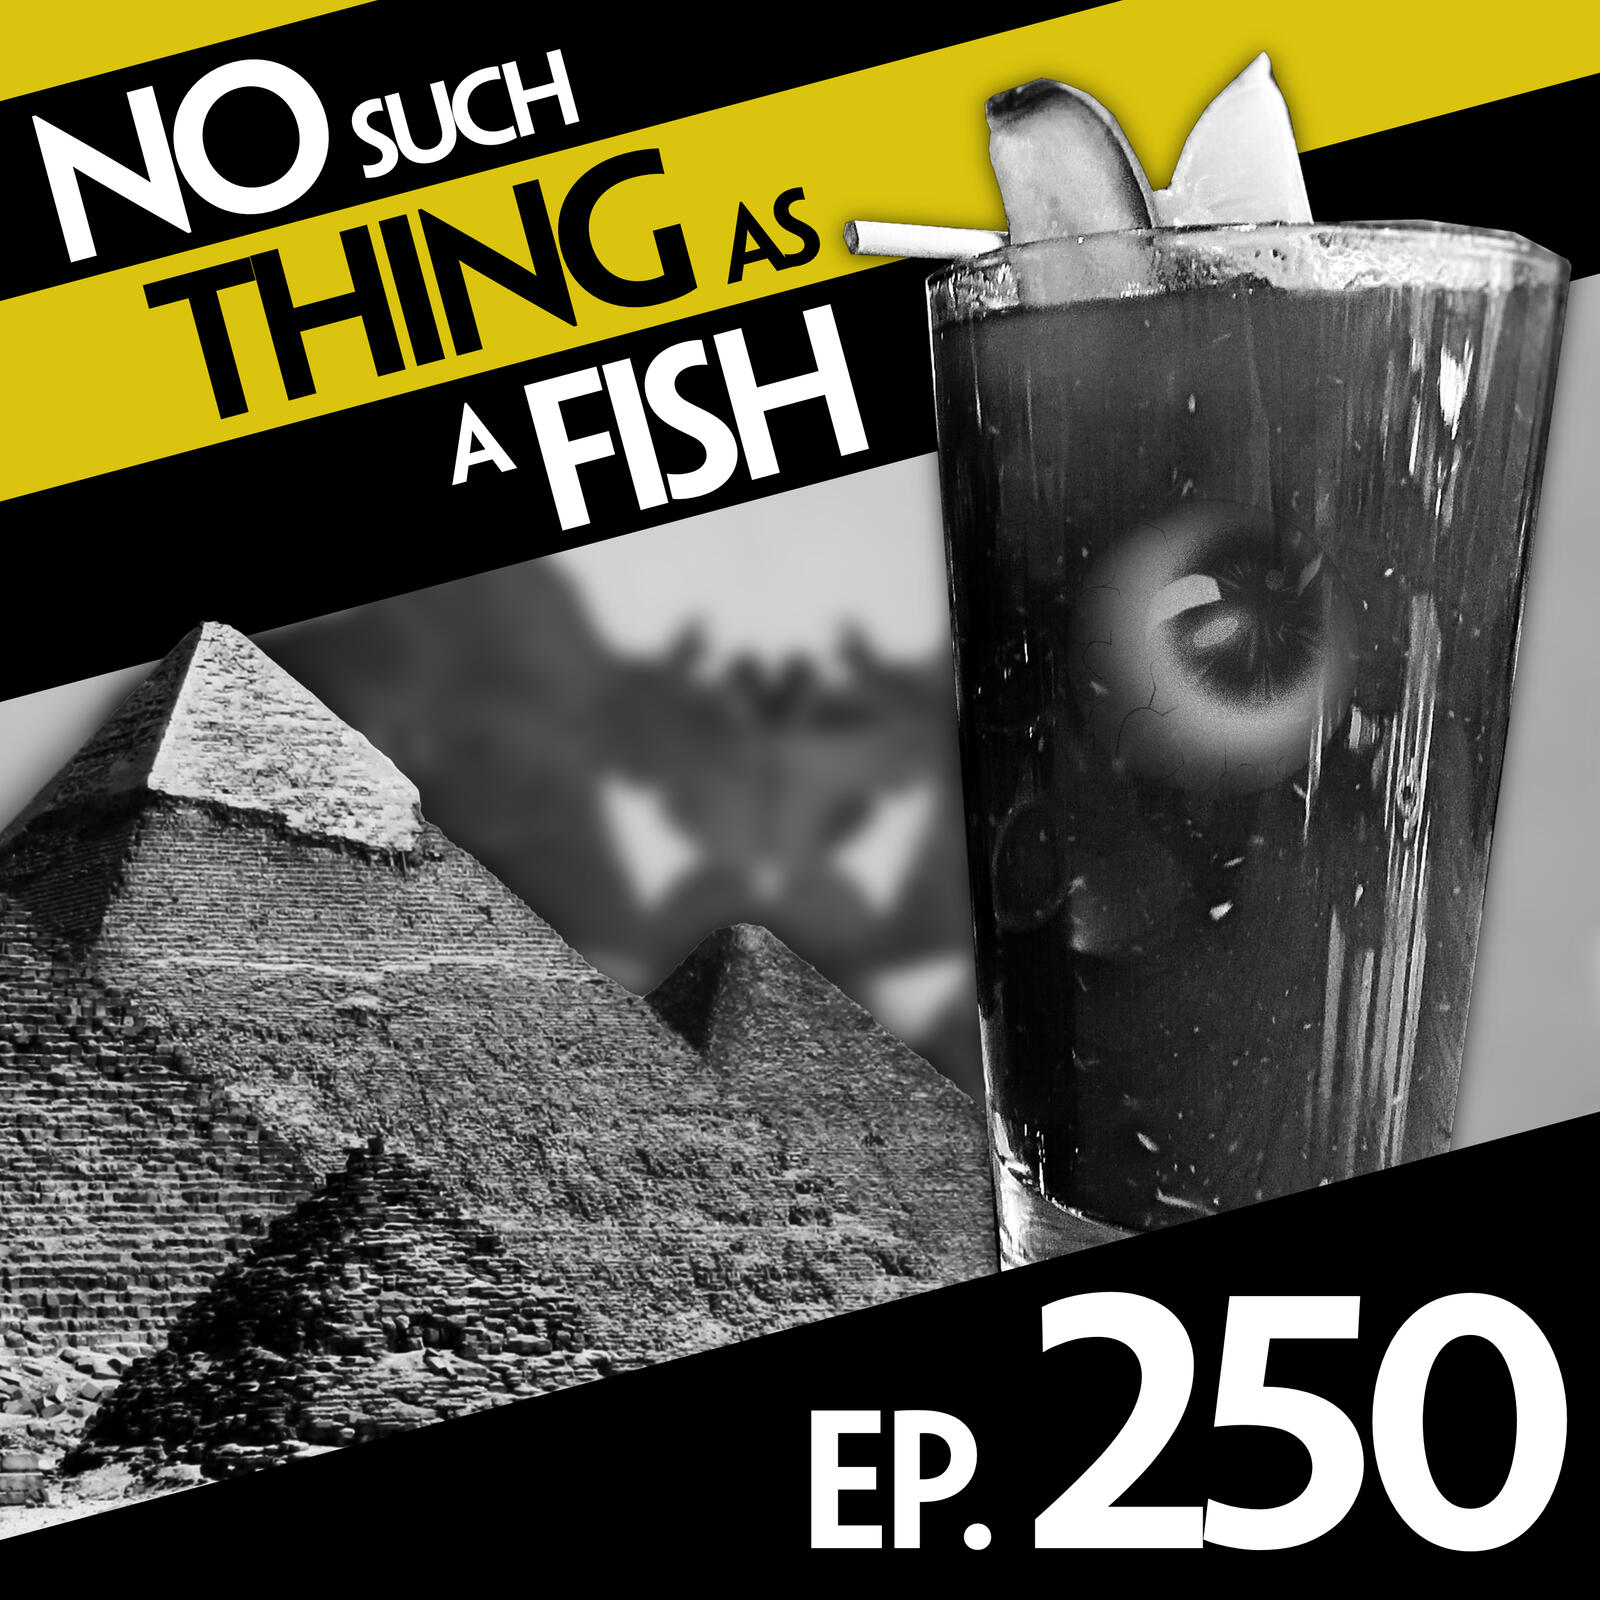 Episode 250: No Such Thing As The Mysterious Chamber